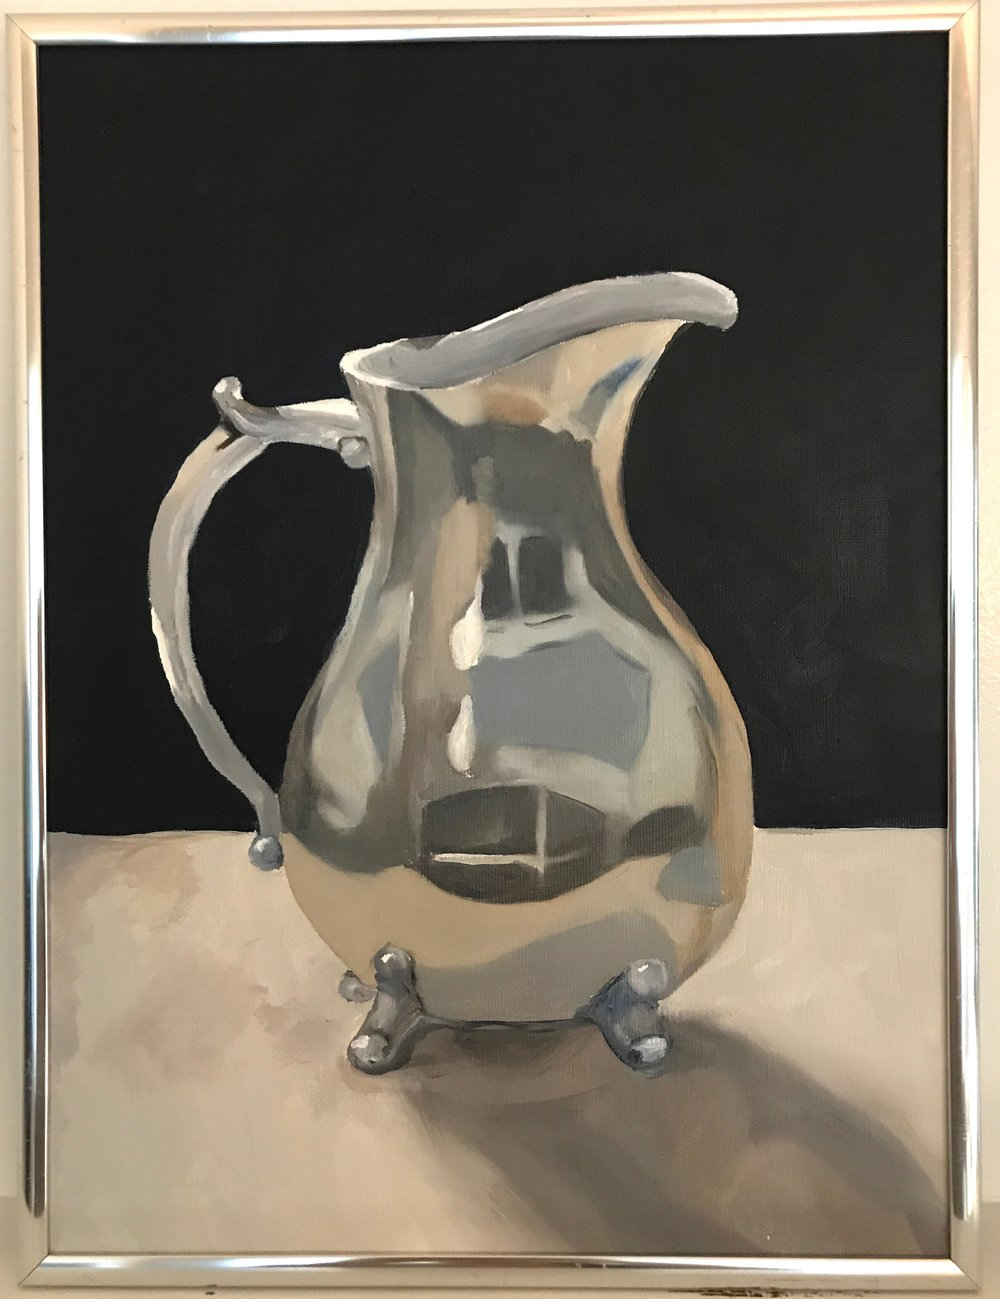 Silver pitcher sketch